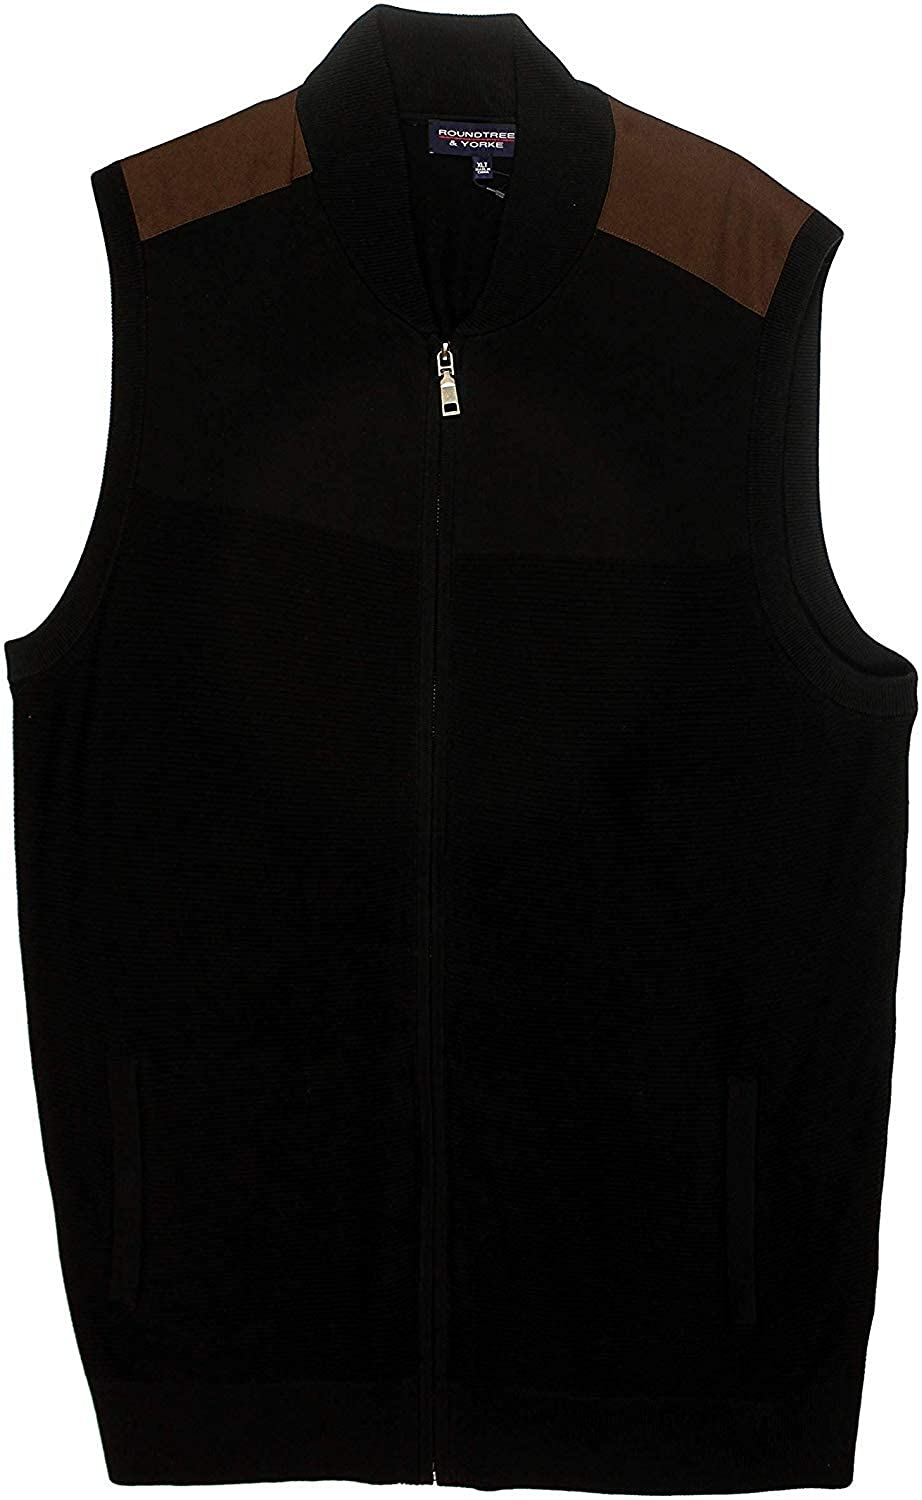 Roundtree & Yorke Big Tall Men's Cotton Full Zip Textured Sweater Vest with Sueded Trim